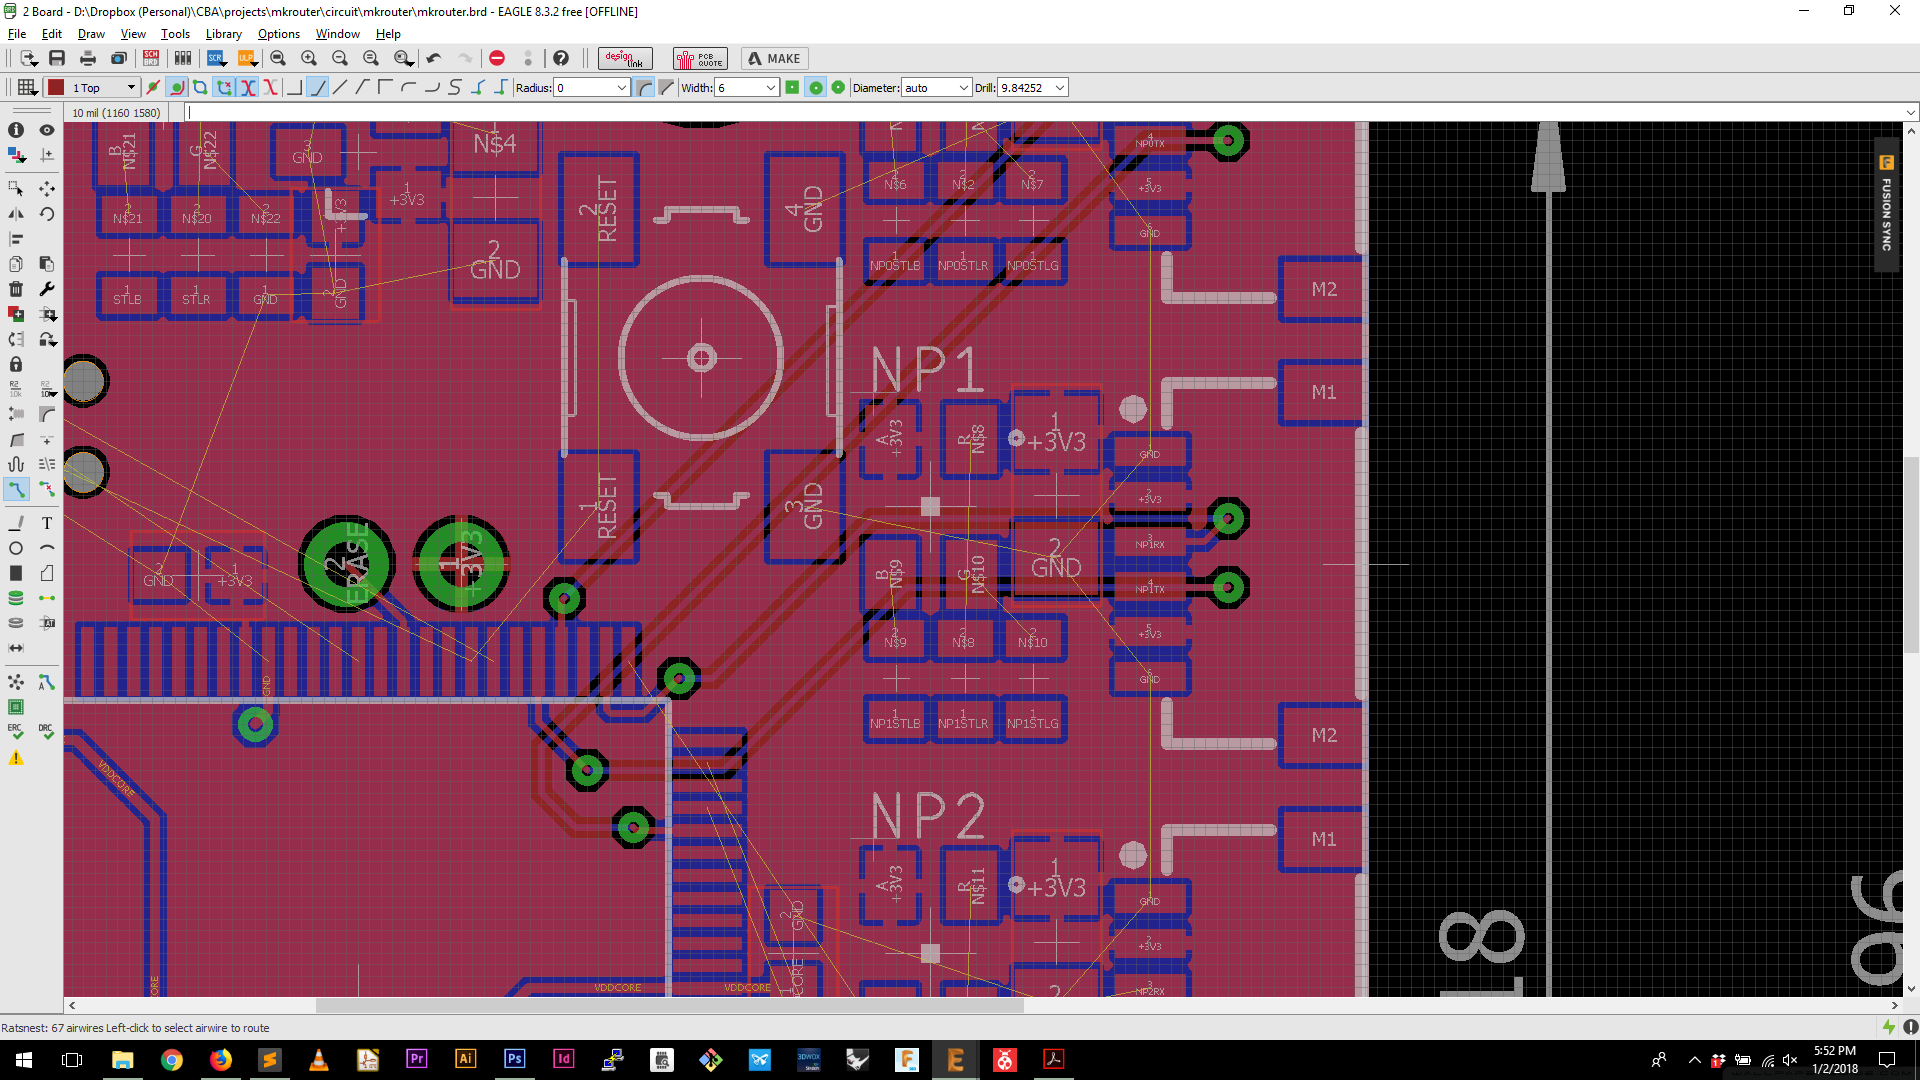 images/routing-ground-uart.png